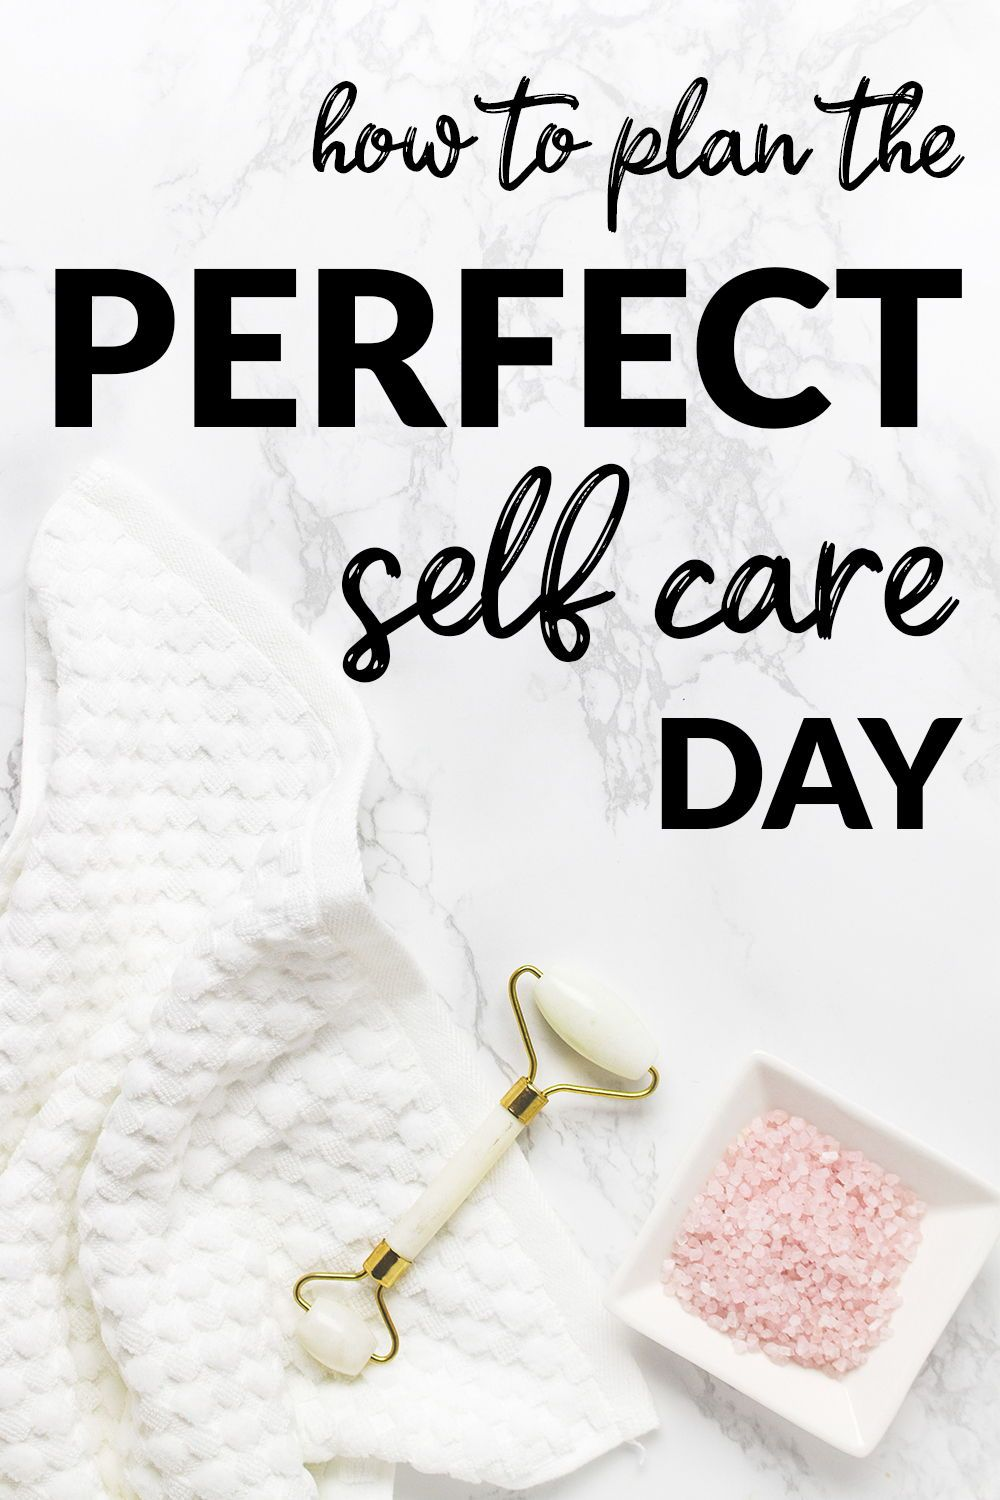 A mental health day is a day off for self care when you